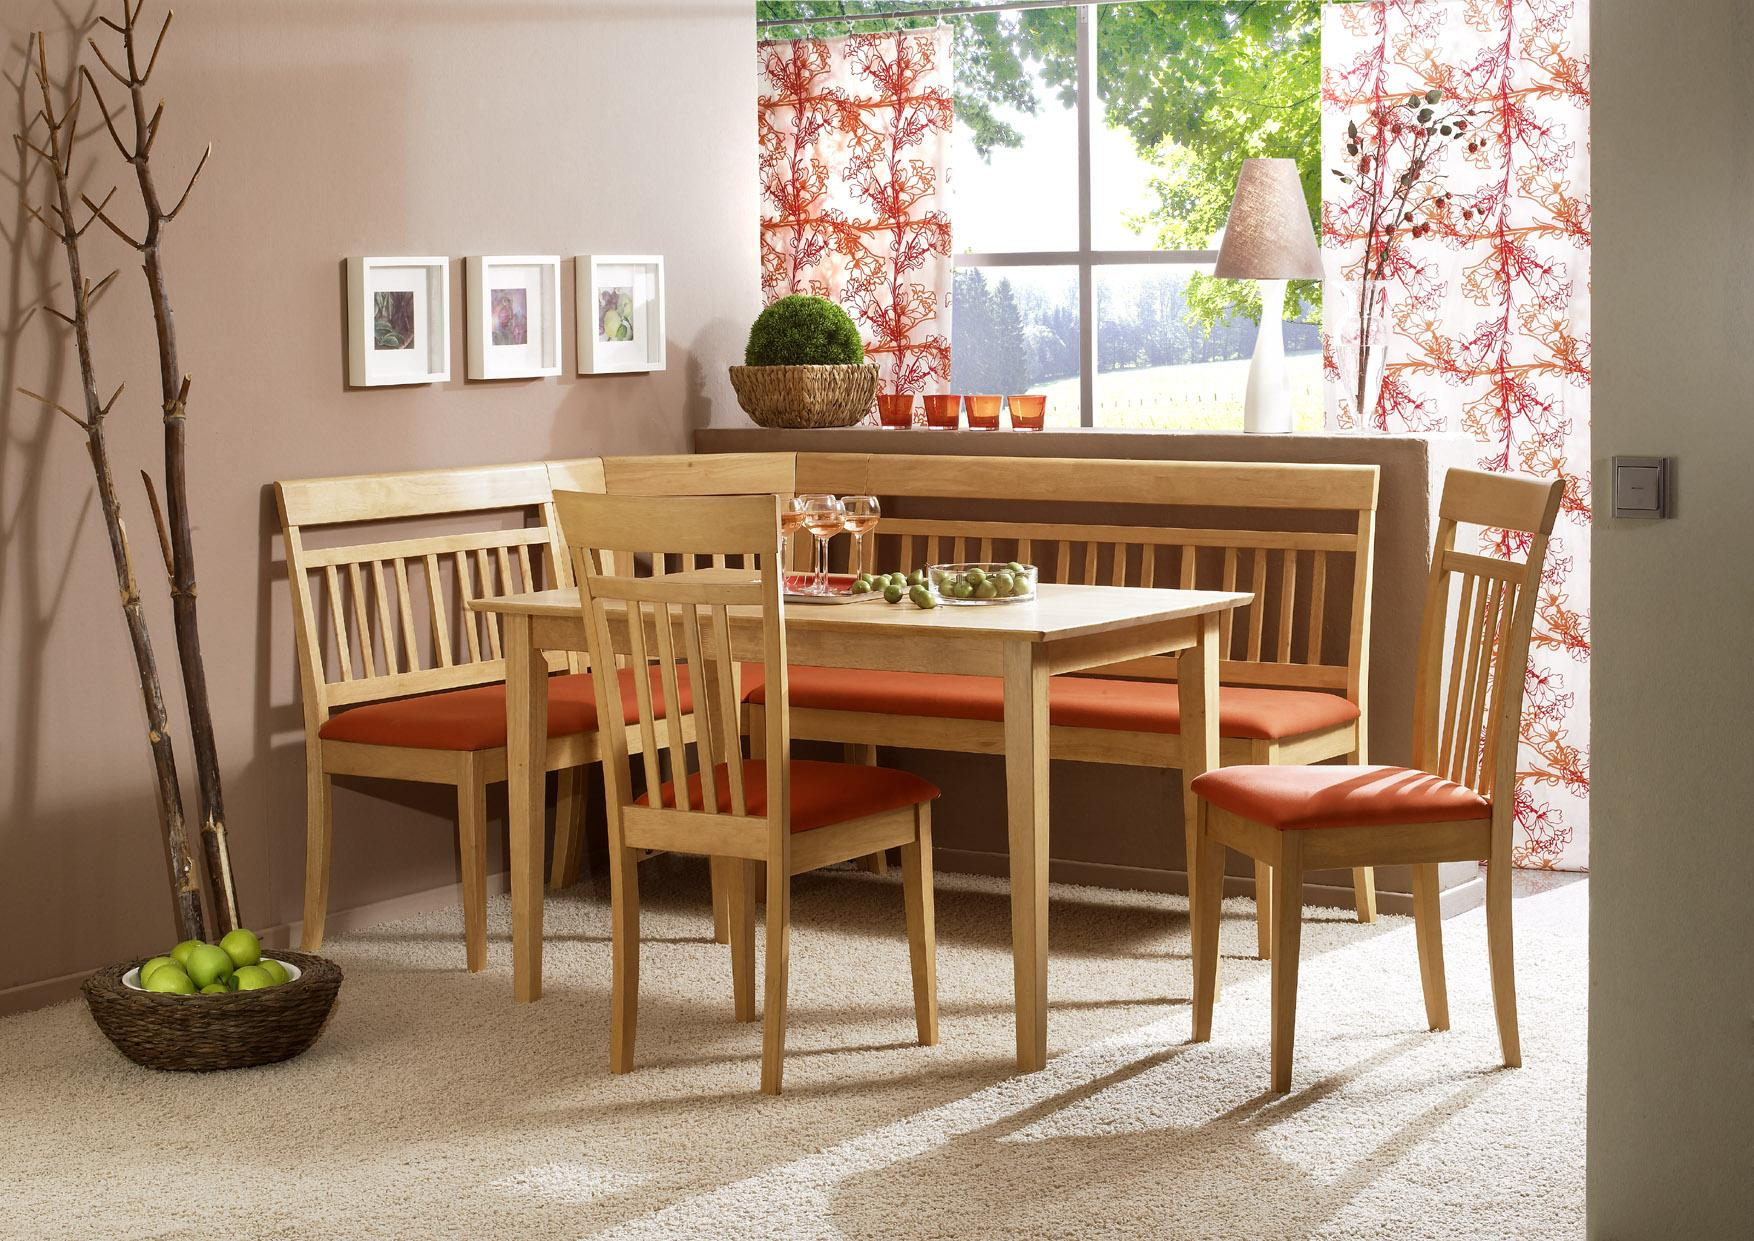 Dining room table with corner bench seat - Simple Wood Corner Bench Kitchen With Orange Cushion Wood Table Set With Two Wood Chairs With